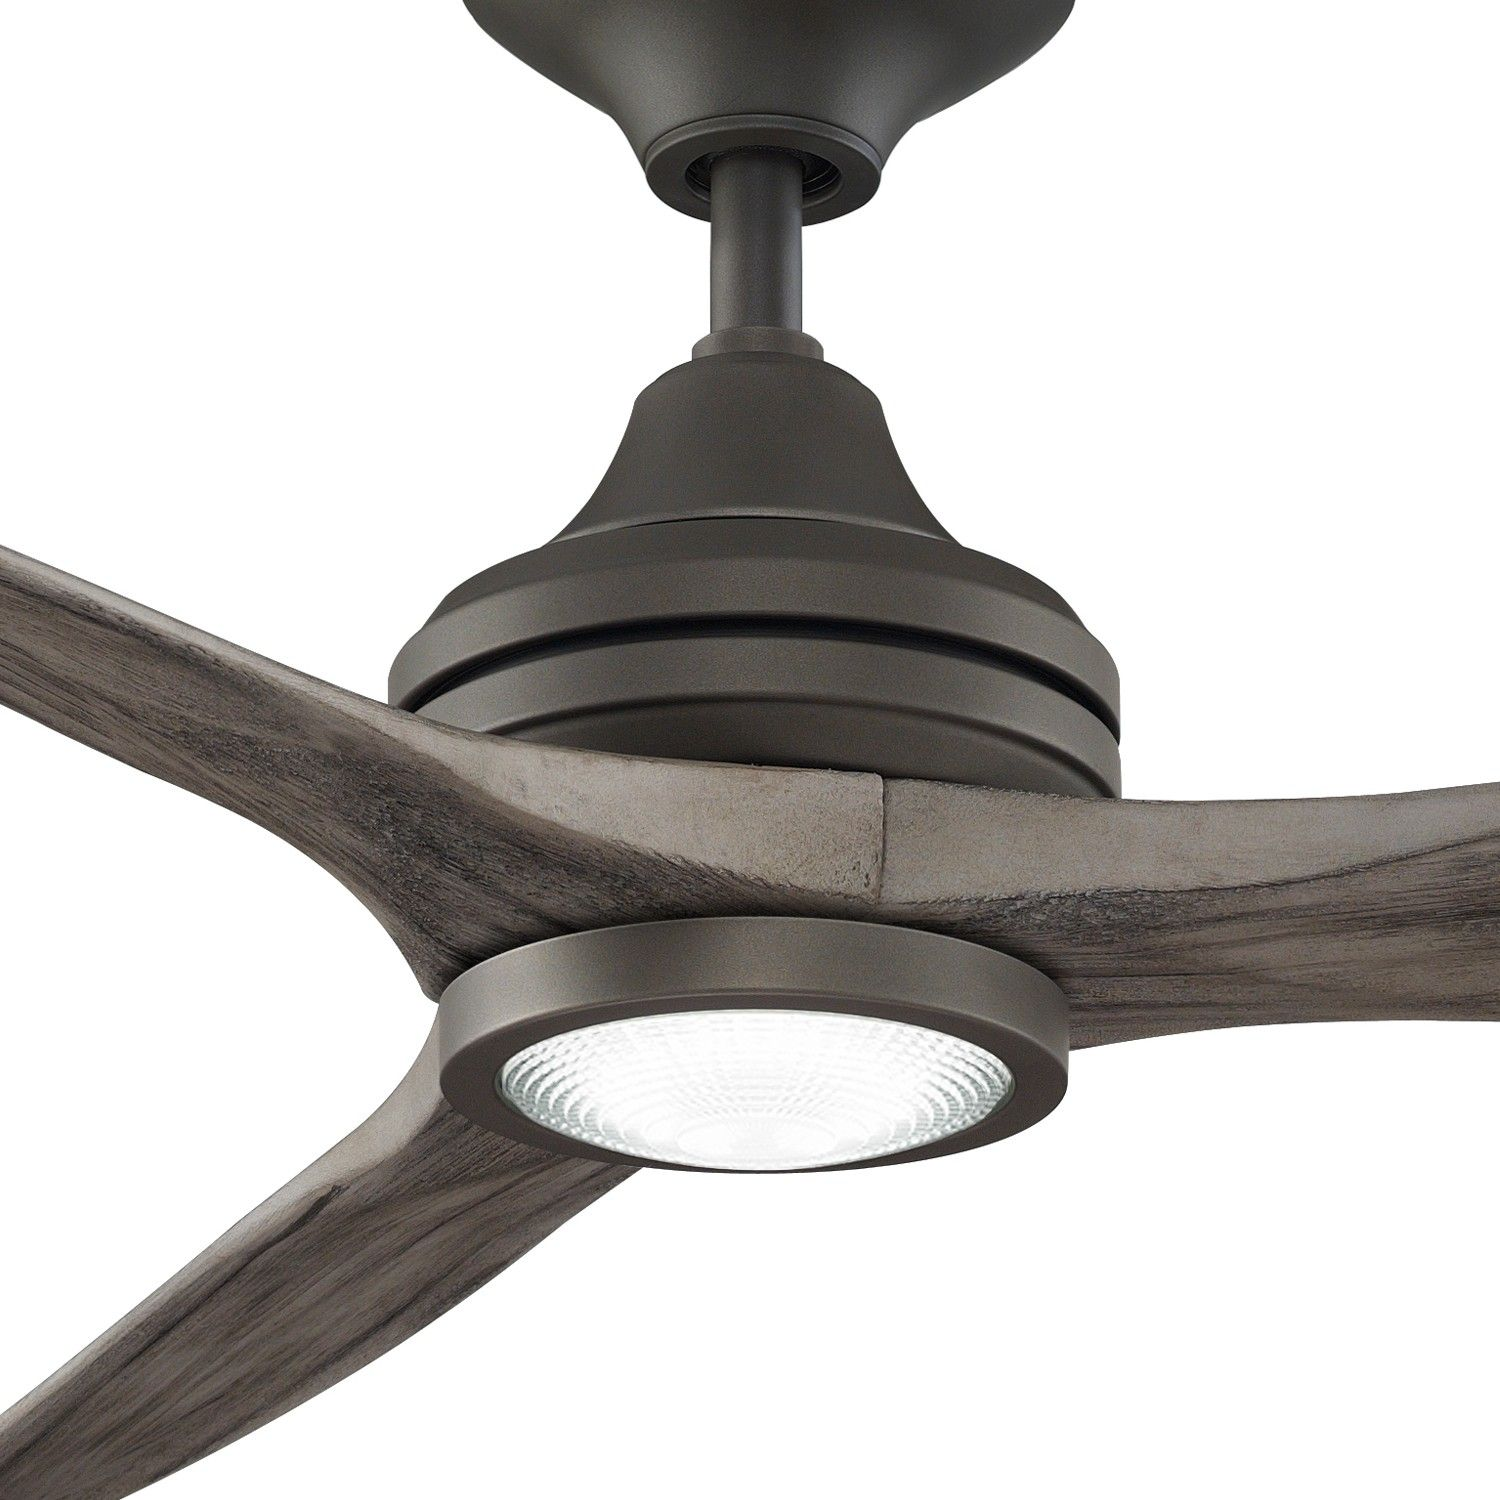 Wood Ceiling Fan With Light Image Collections